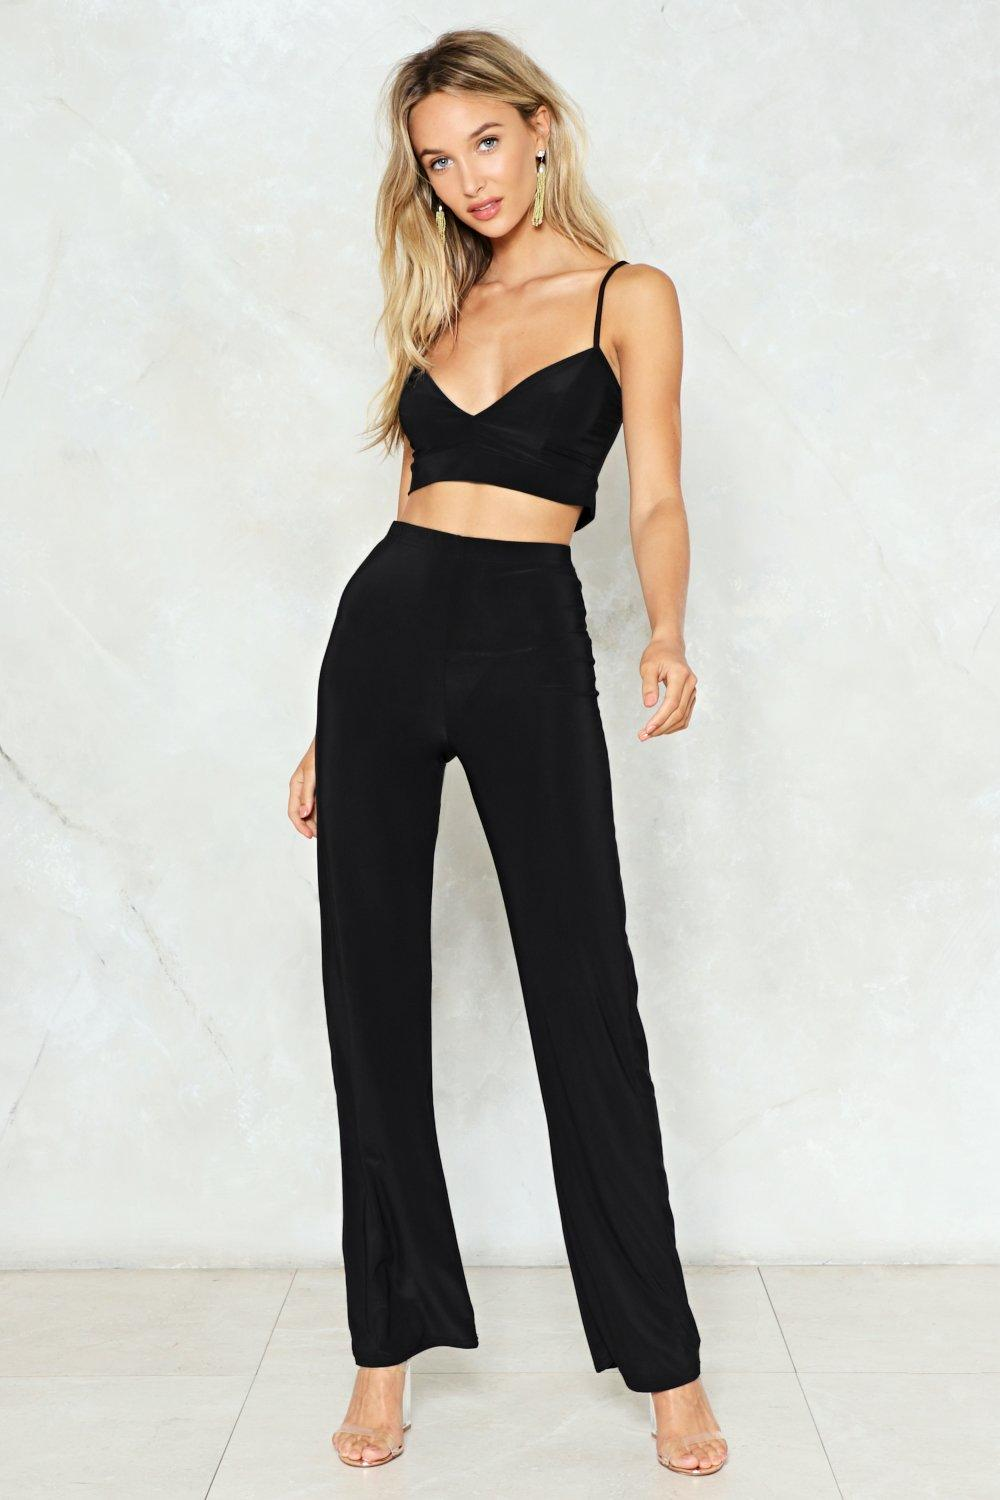 a9be893de2 On the Loose Top and Pants Set | Shop Clothes at Nasty Gal!